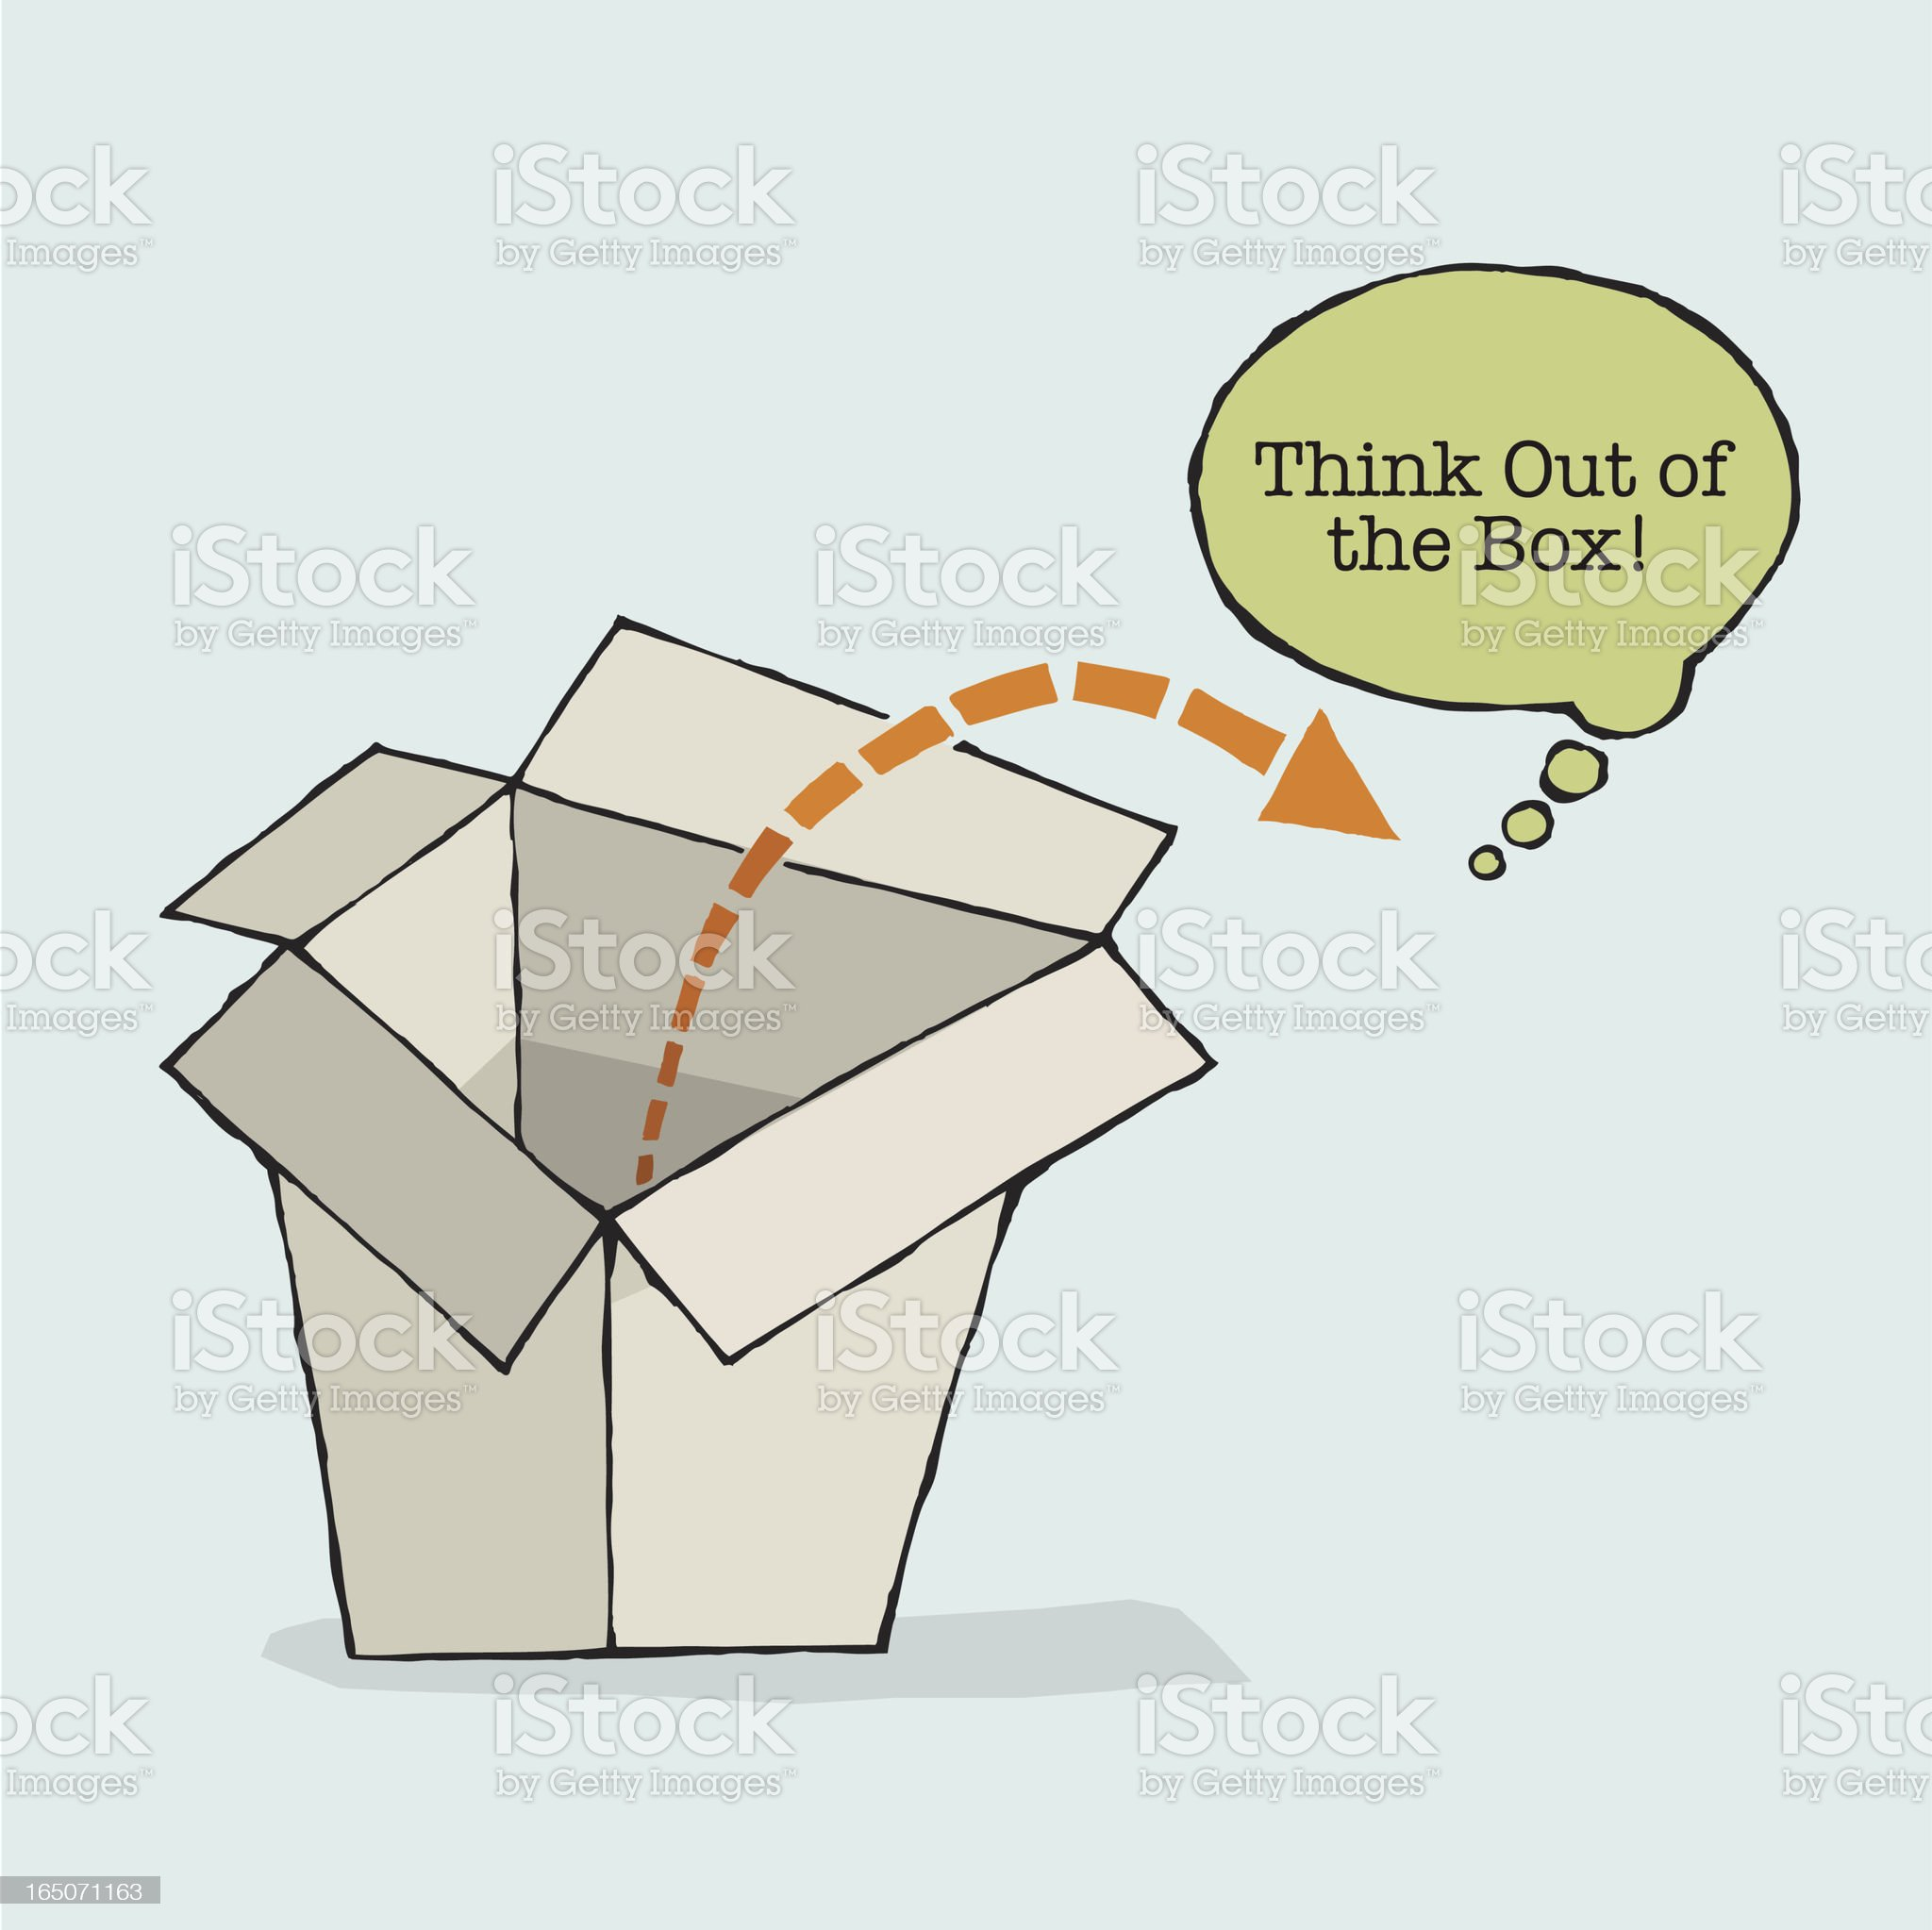 Think Out of the Box royalty-free stock vector art